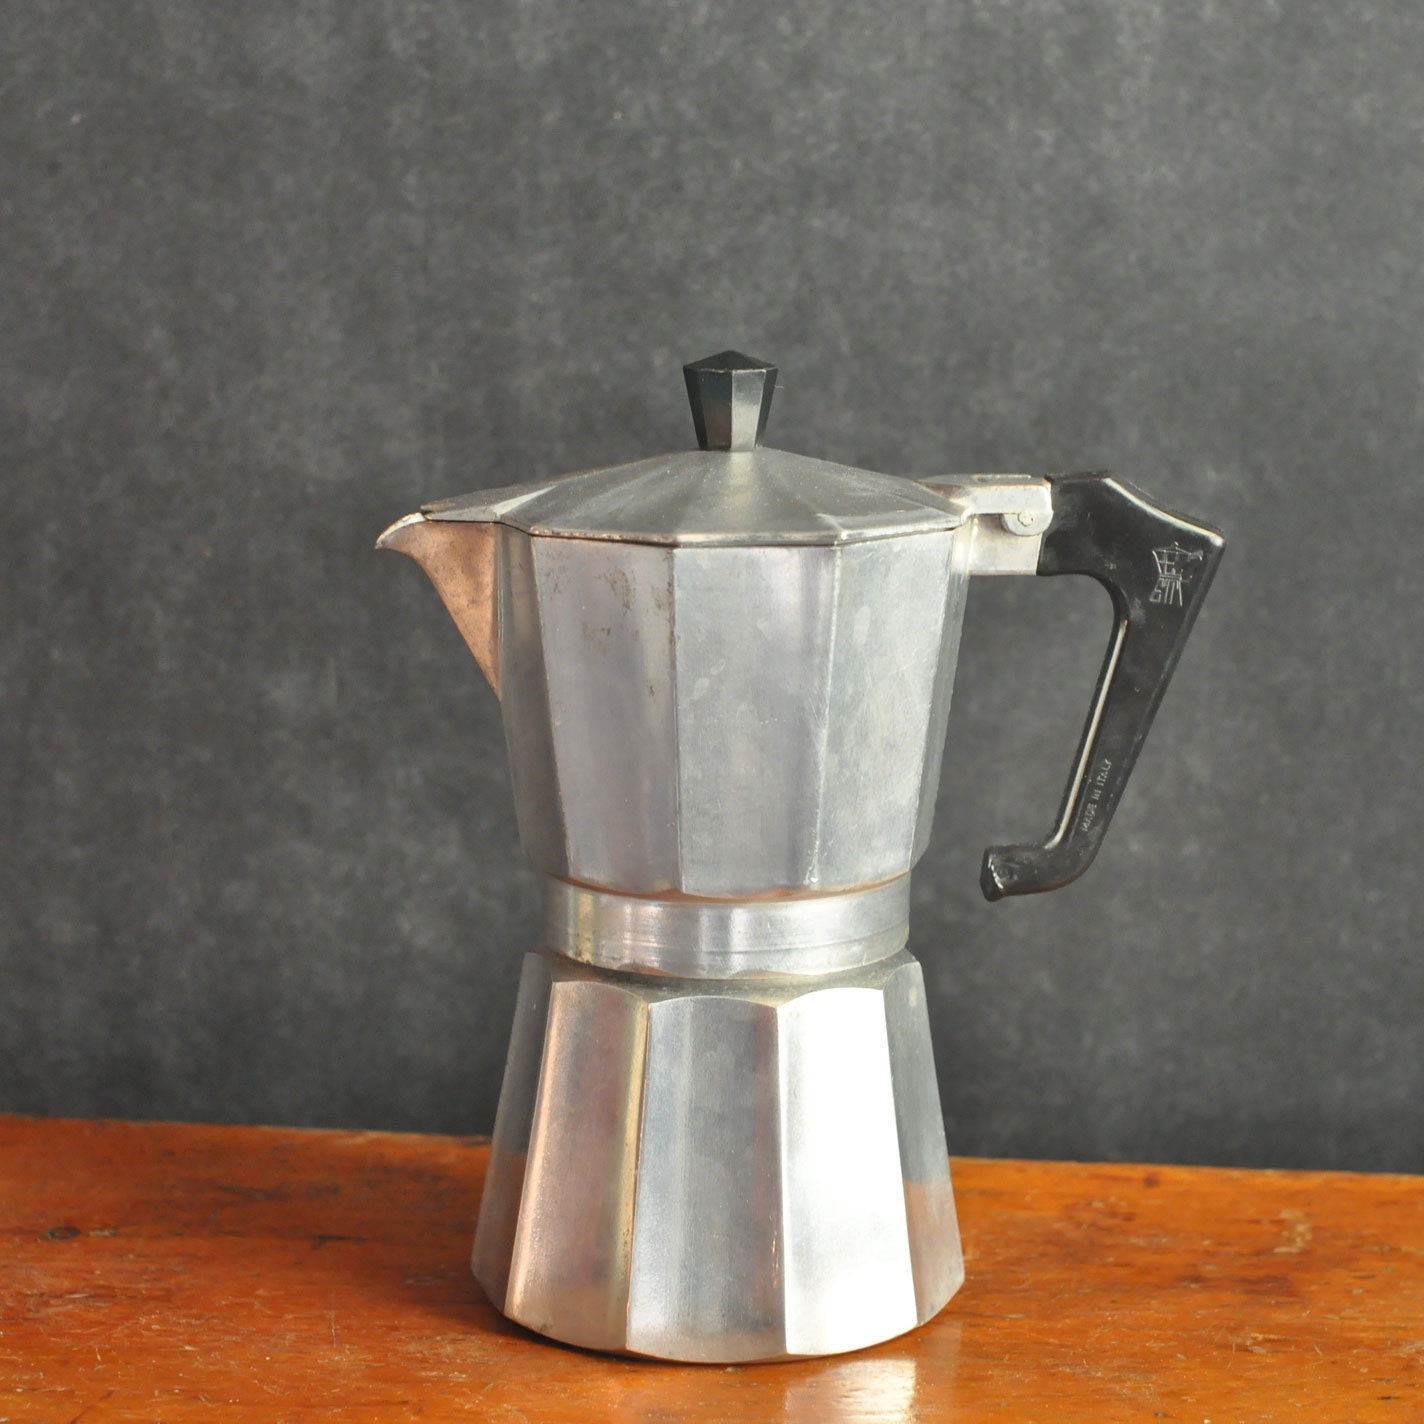 Italian Espresso Machines ~ Vintage italian stovetop coffee espresso maker by drowsyswords